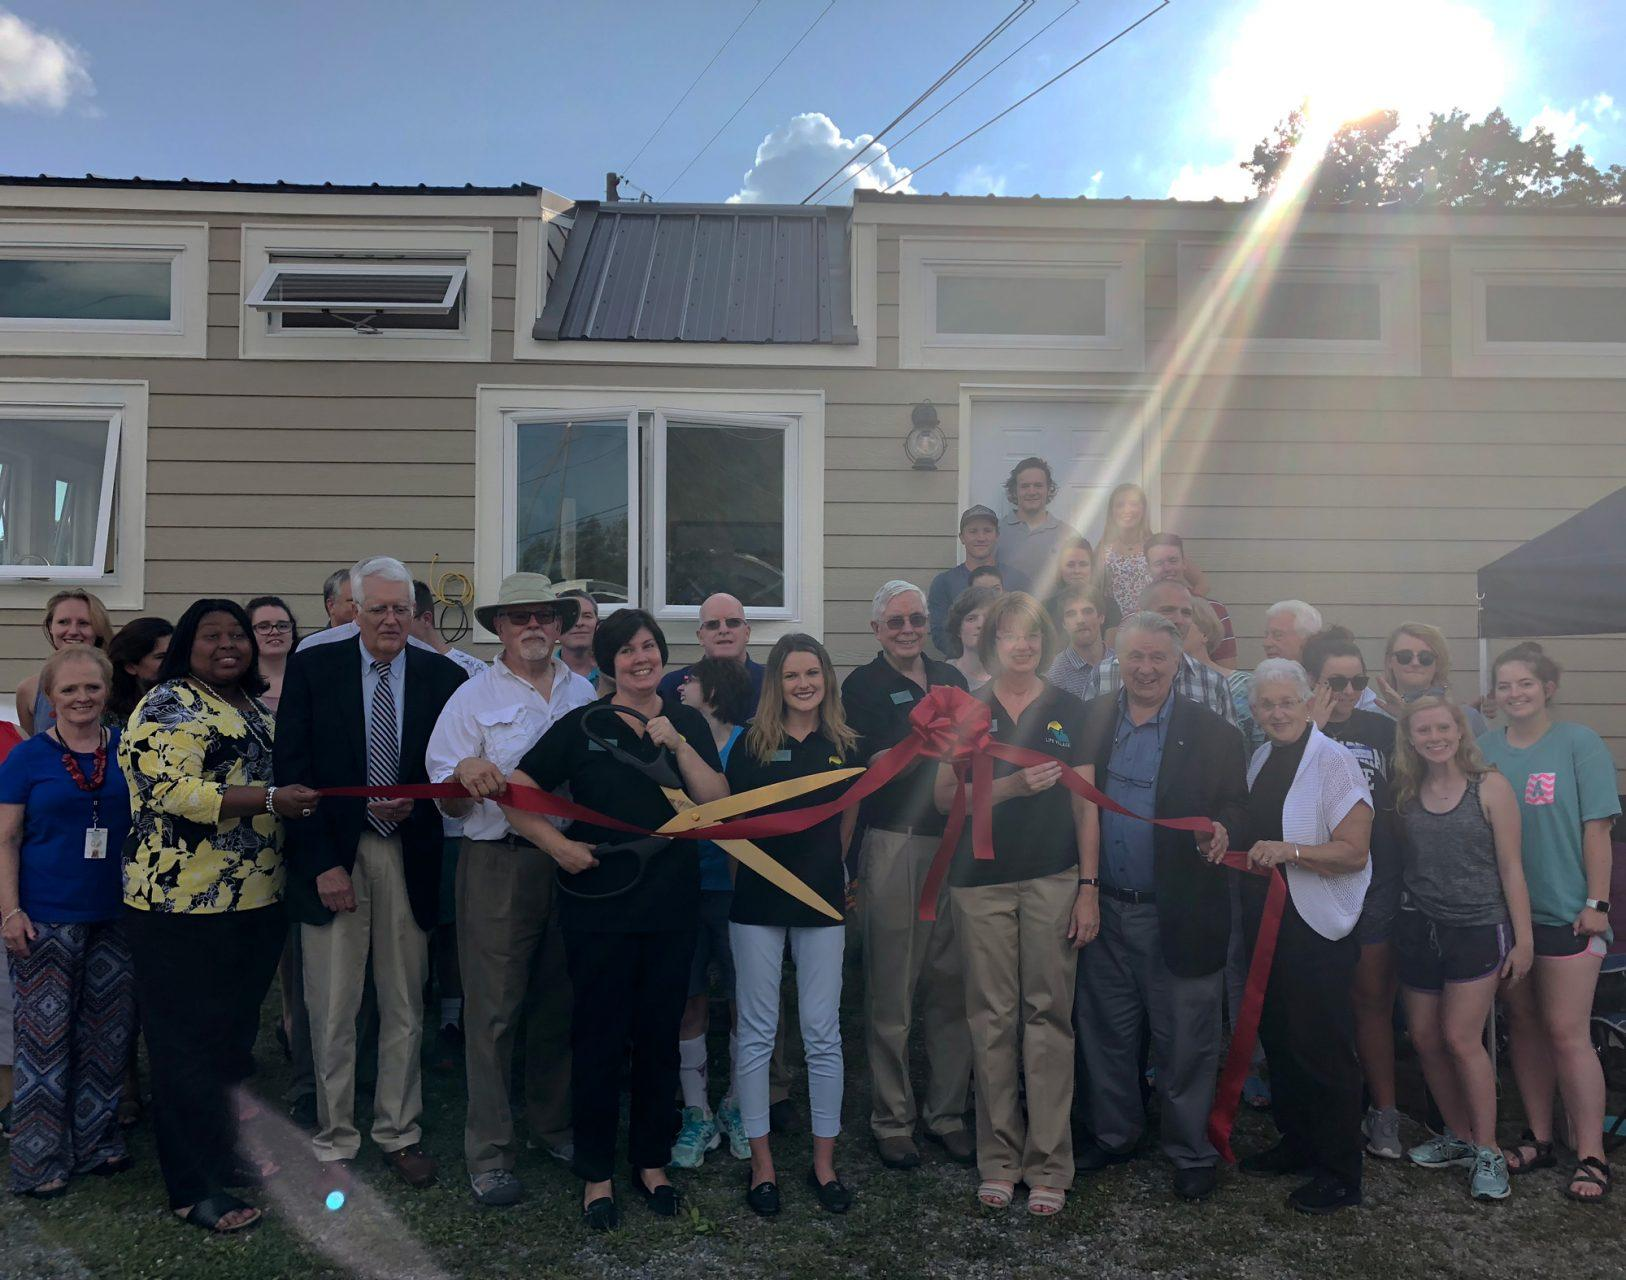 Surrounded+by+App+State+sustainable+technology+students%2C+Boone+politicians+and+community+members%2C+Vice+President+and+Director+of+Development+of+LIFE+Village%2C+Candace+Lang%2C+cuts+the+ribbon+for+a+new+tiny+house.+LIFE+Village+built+this+tiny+house+as+home+for+adults+with+autism+and+LIFE+team+members.+